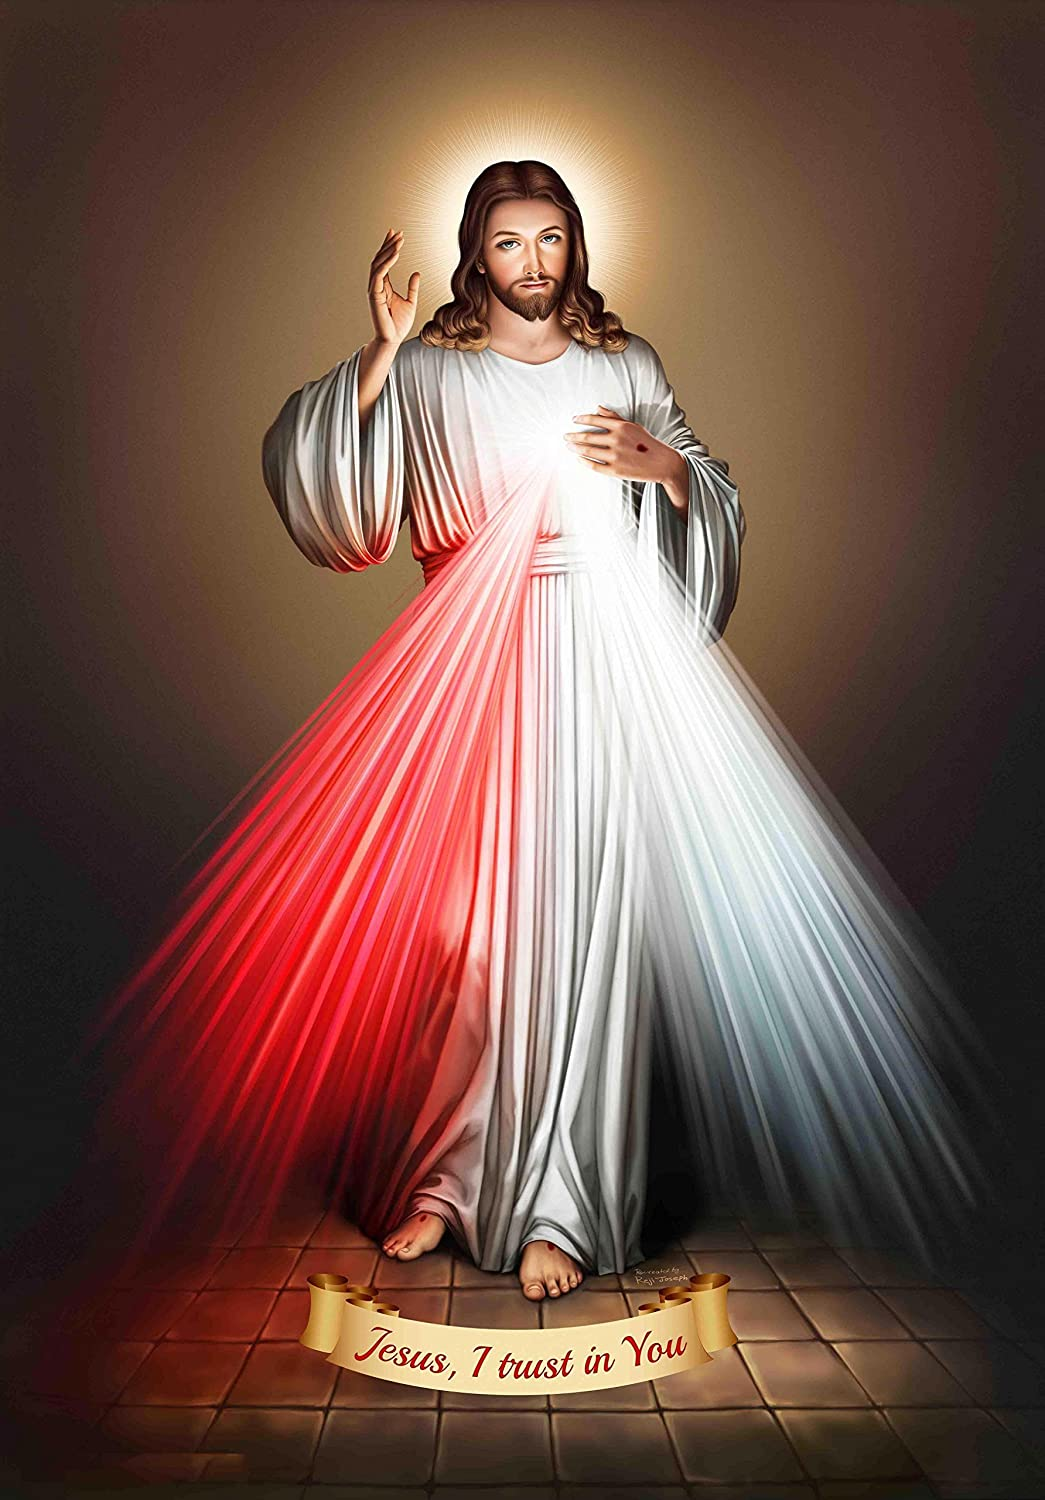 Kumkum Arts Jesus Hd Unframed Poster Photographic Gloss Paper 12 X 18 Inch Multicolour Amazon In Home Kitchen